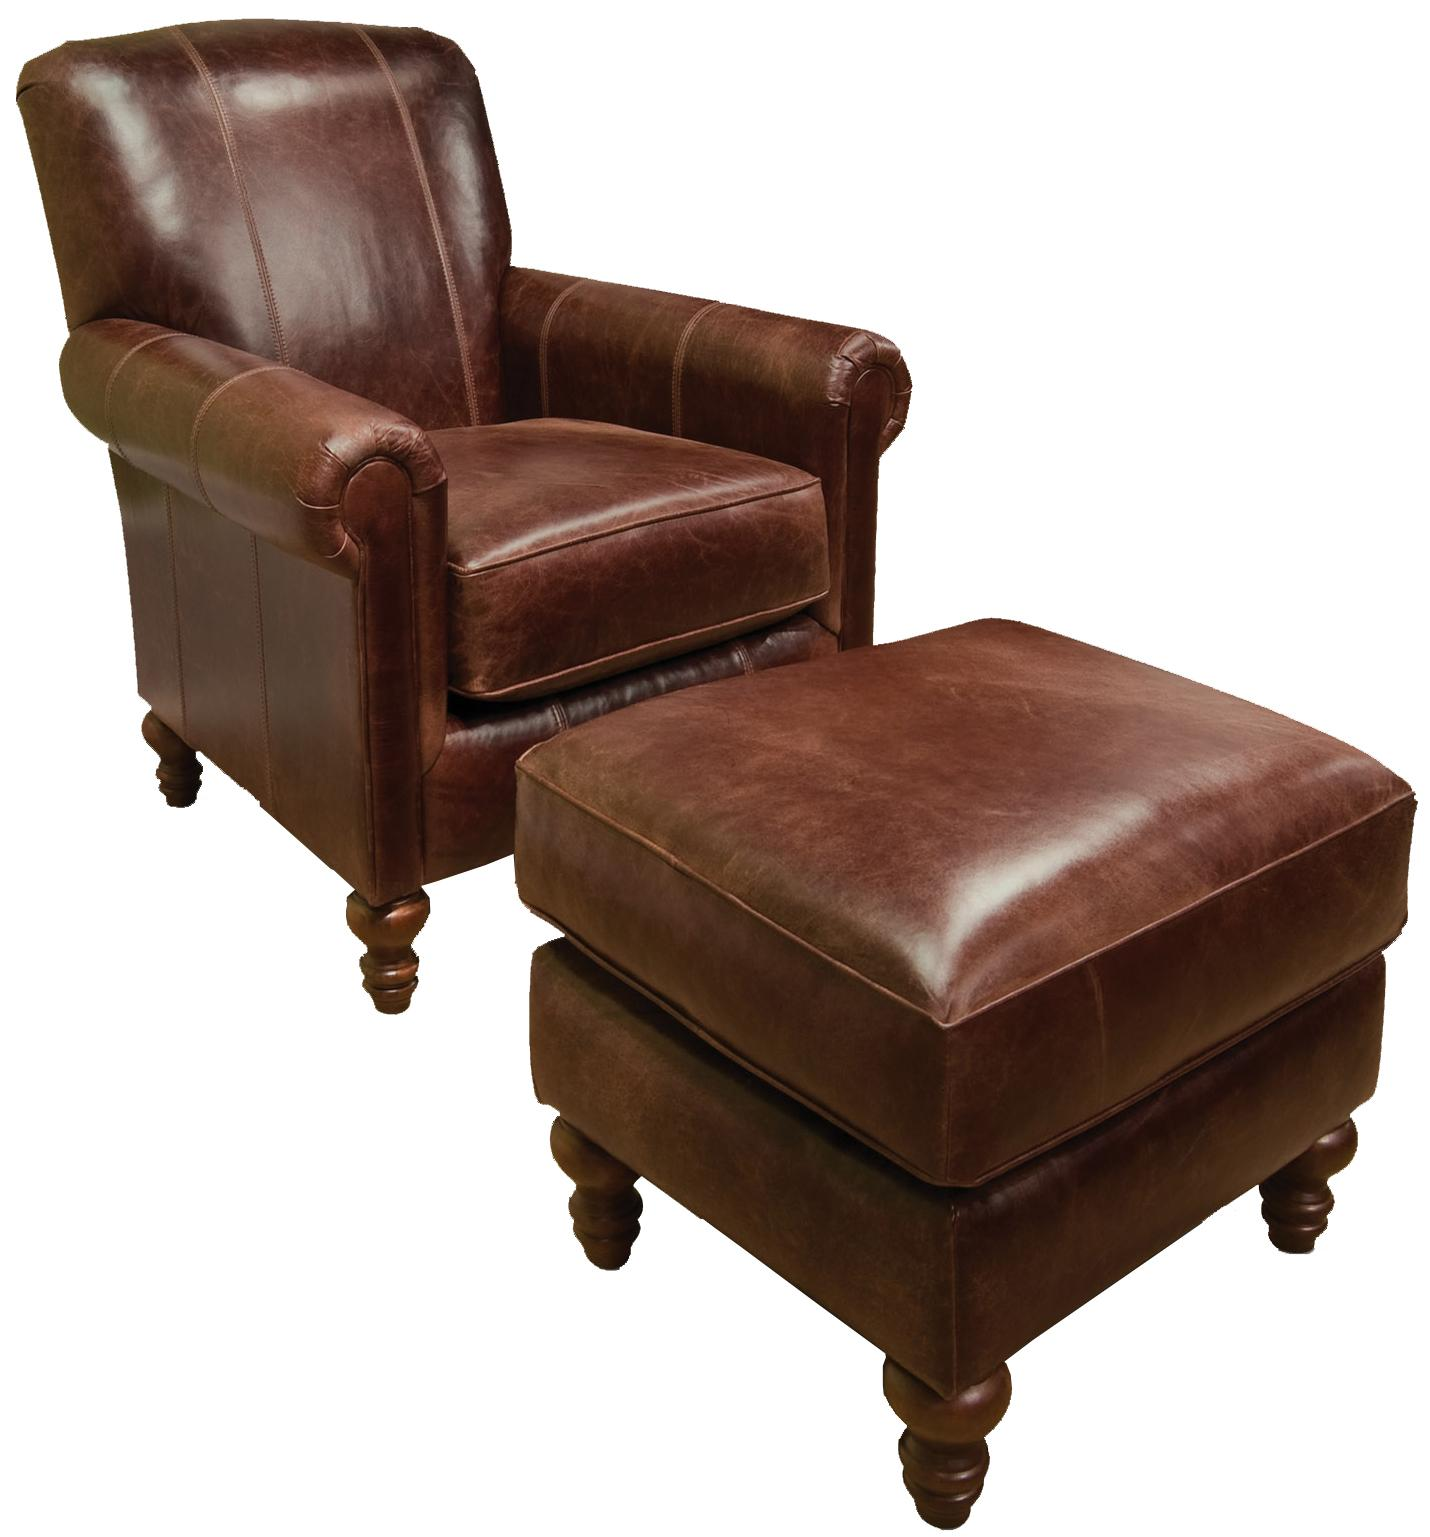 England Lane Chair and Ottoman - Item Number: 634AL+637AL